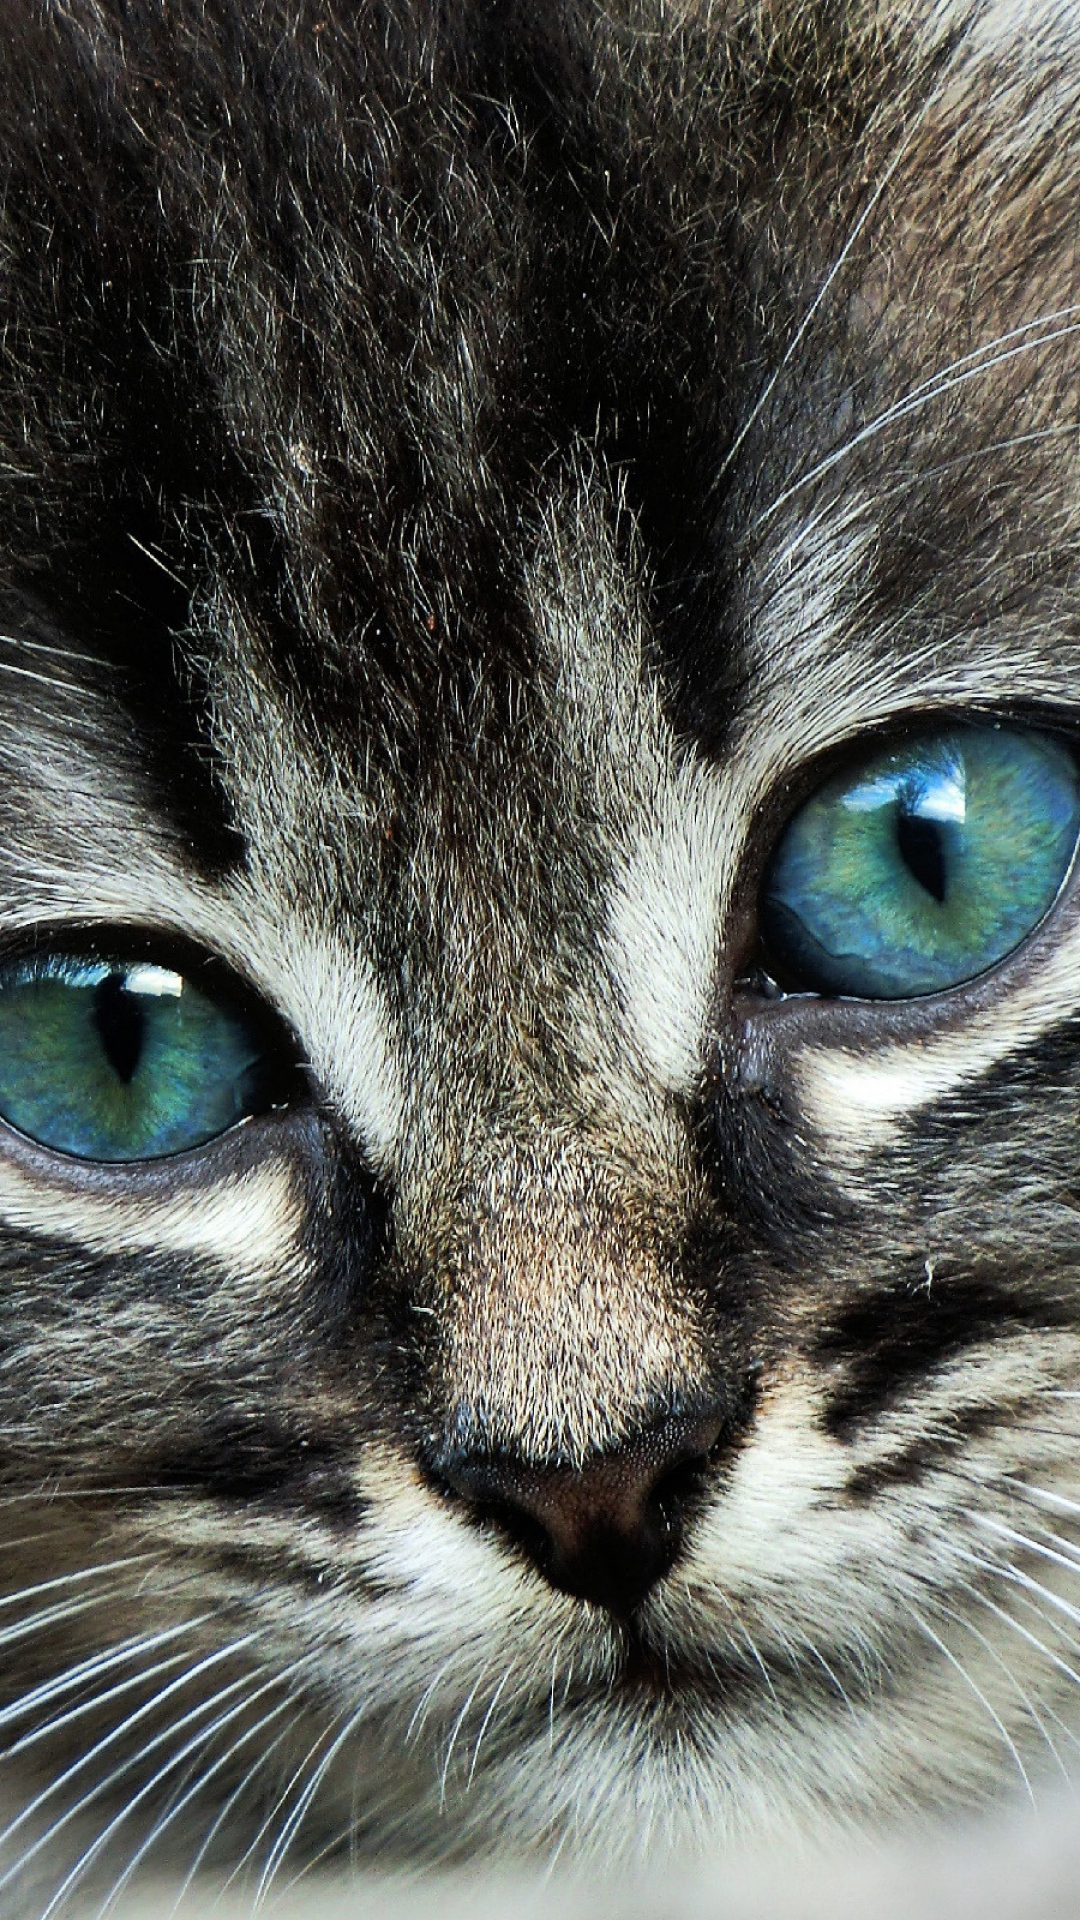 Download-1080x1920-cat-face-eyes-color-Sony-Xperia-Z-ZL-Z-Samsung-Galaxy-S-HTC-On-wallpaper-wp3605085